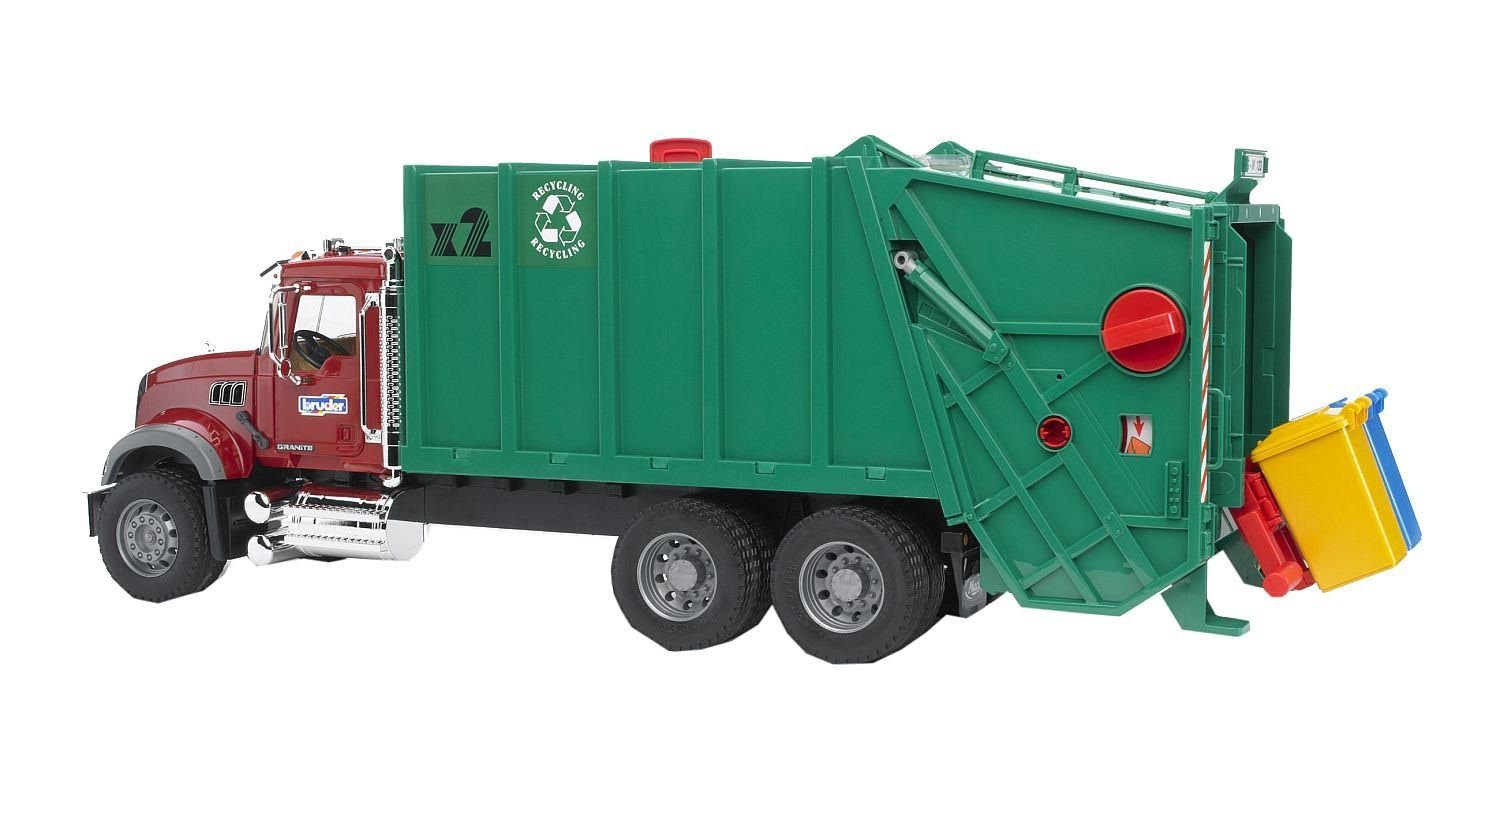 Bruder #02812 MACK Granite Garbage Truck (Ruby, Red, Green) -New-Factory Sealed #2812